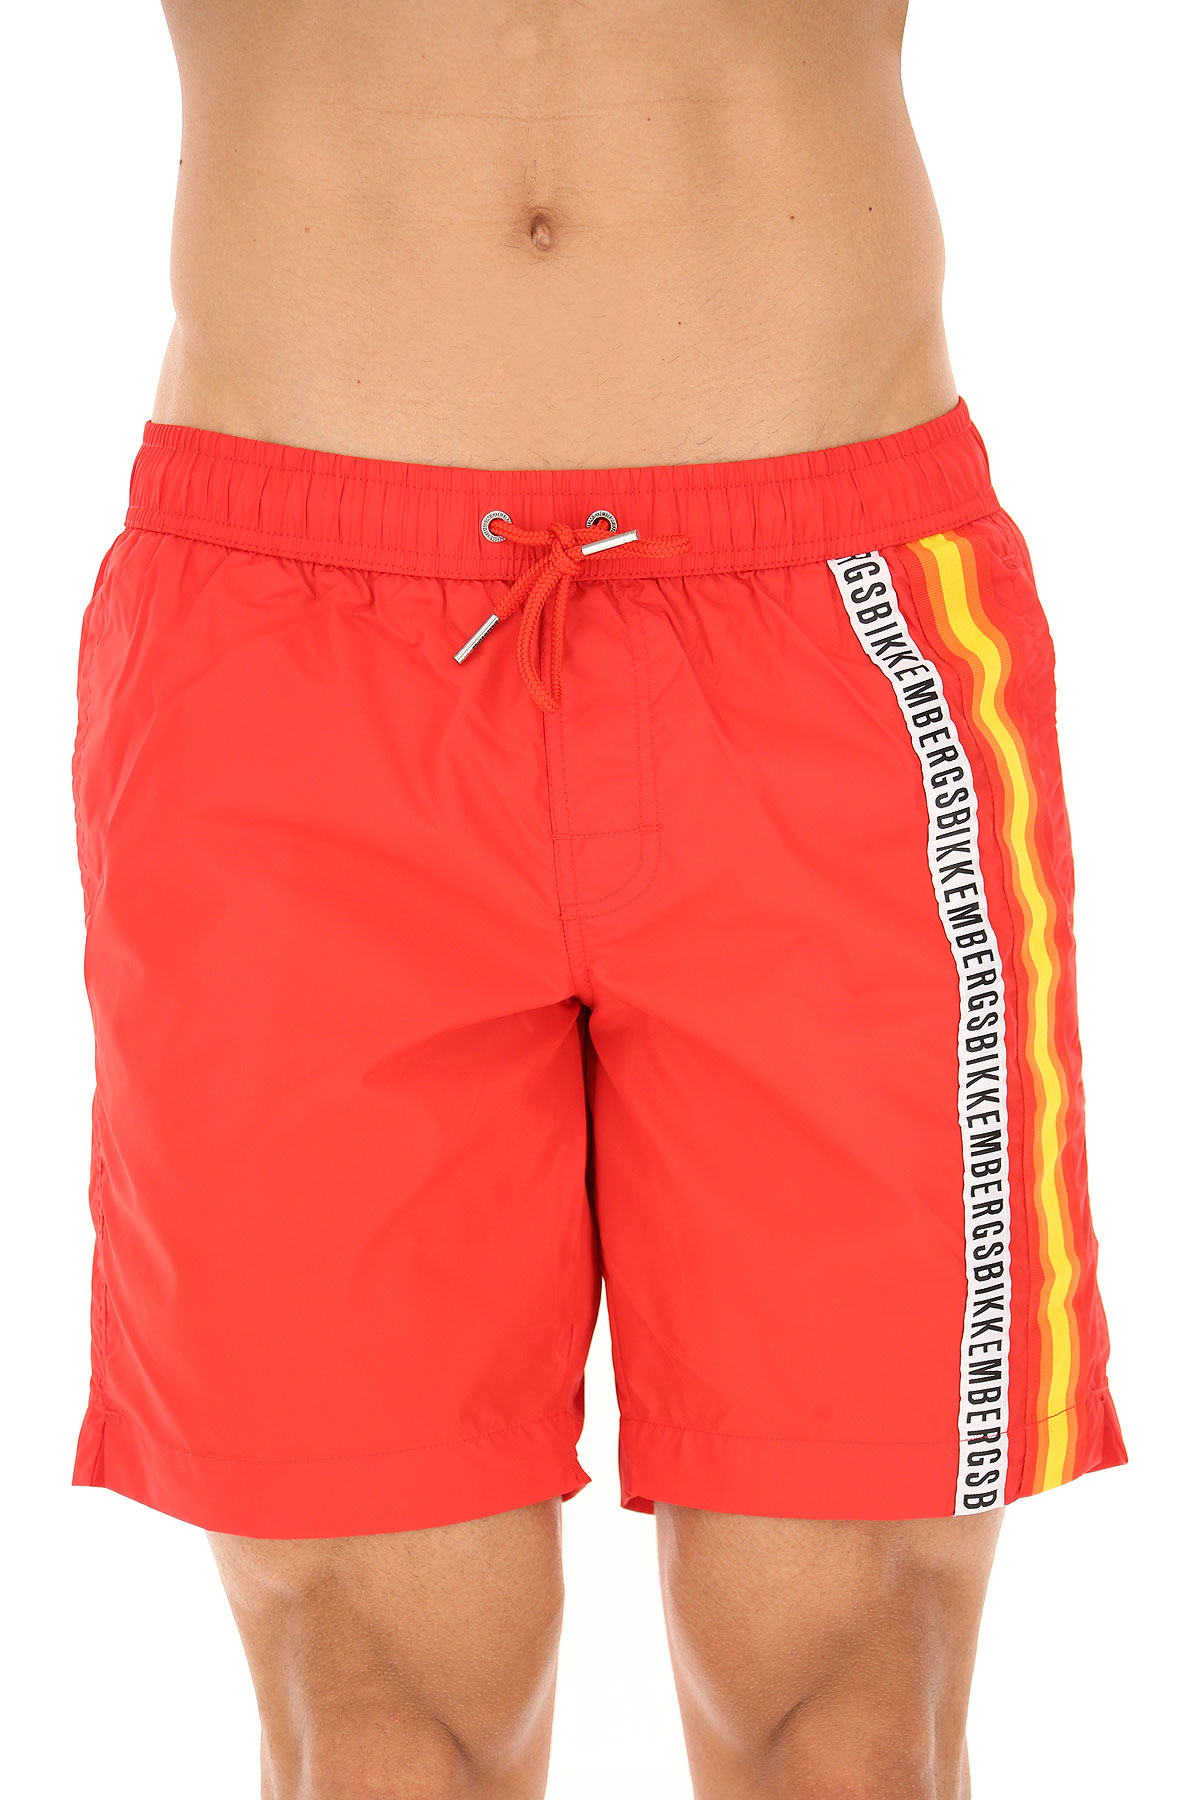 171f7f64f2fa95 Dirk Bikkembergs Board Shorts for Men On Sale in Outlet, Red, polyamide,  2019